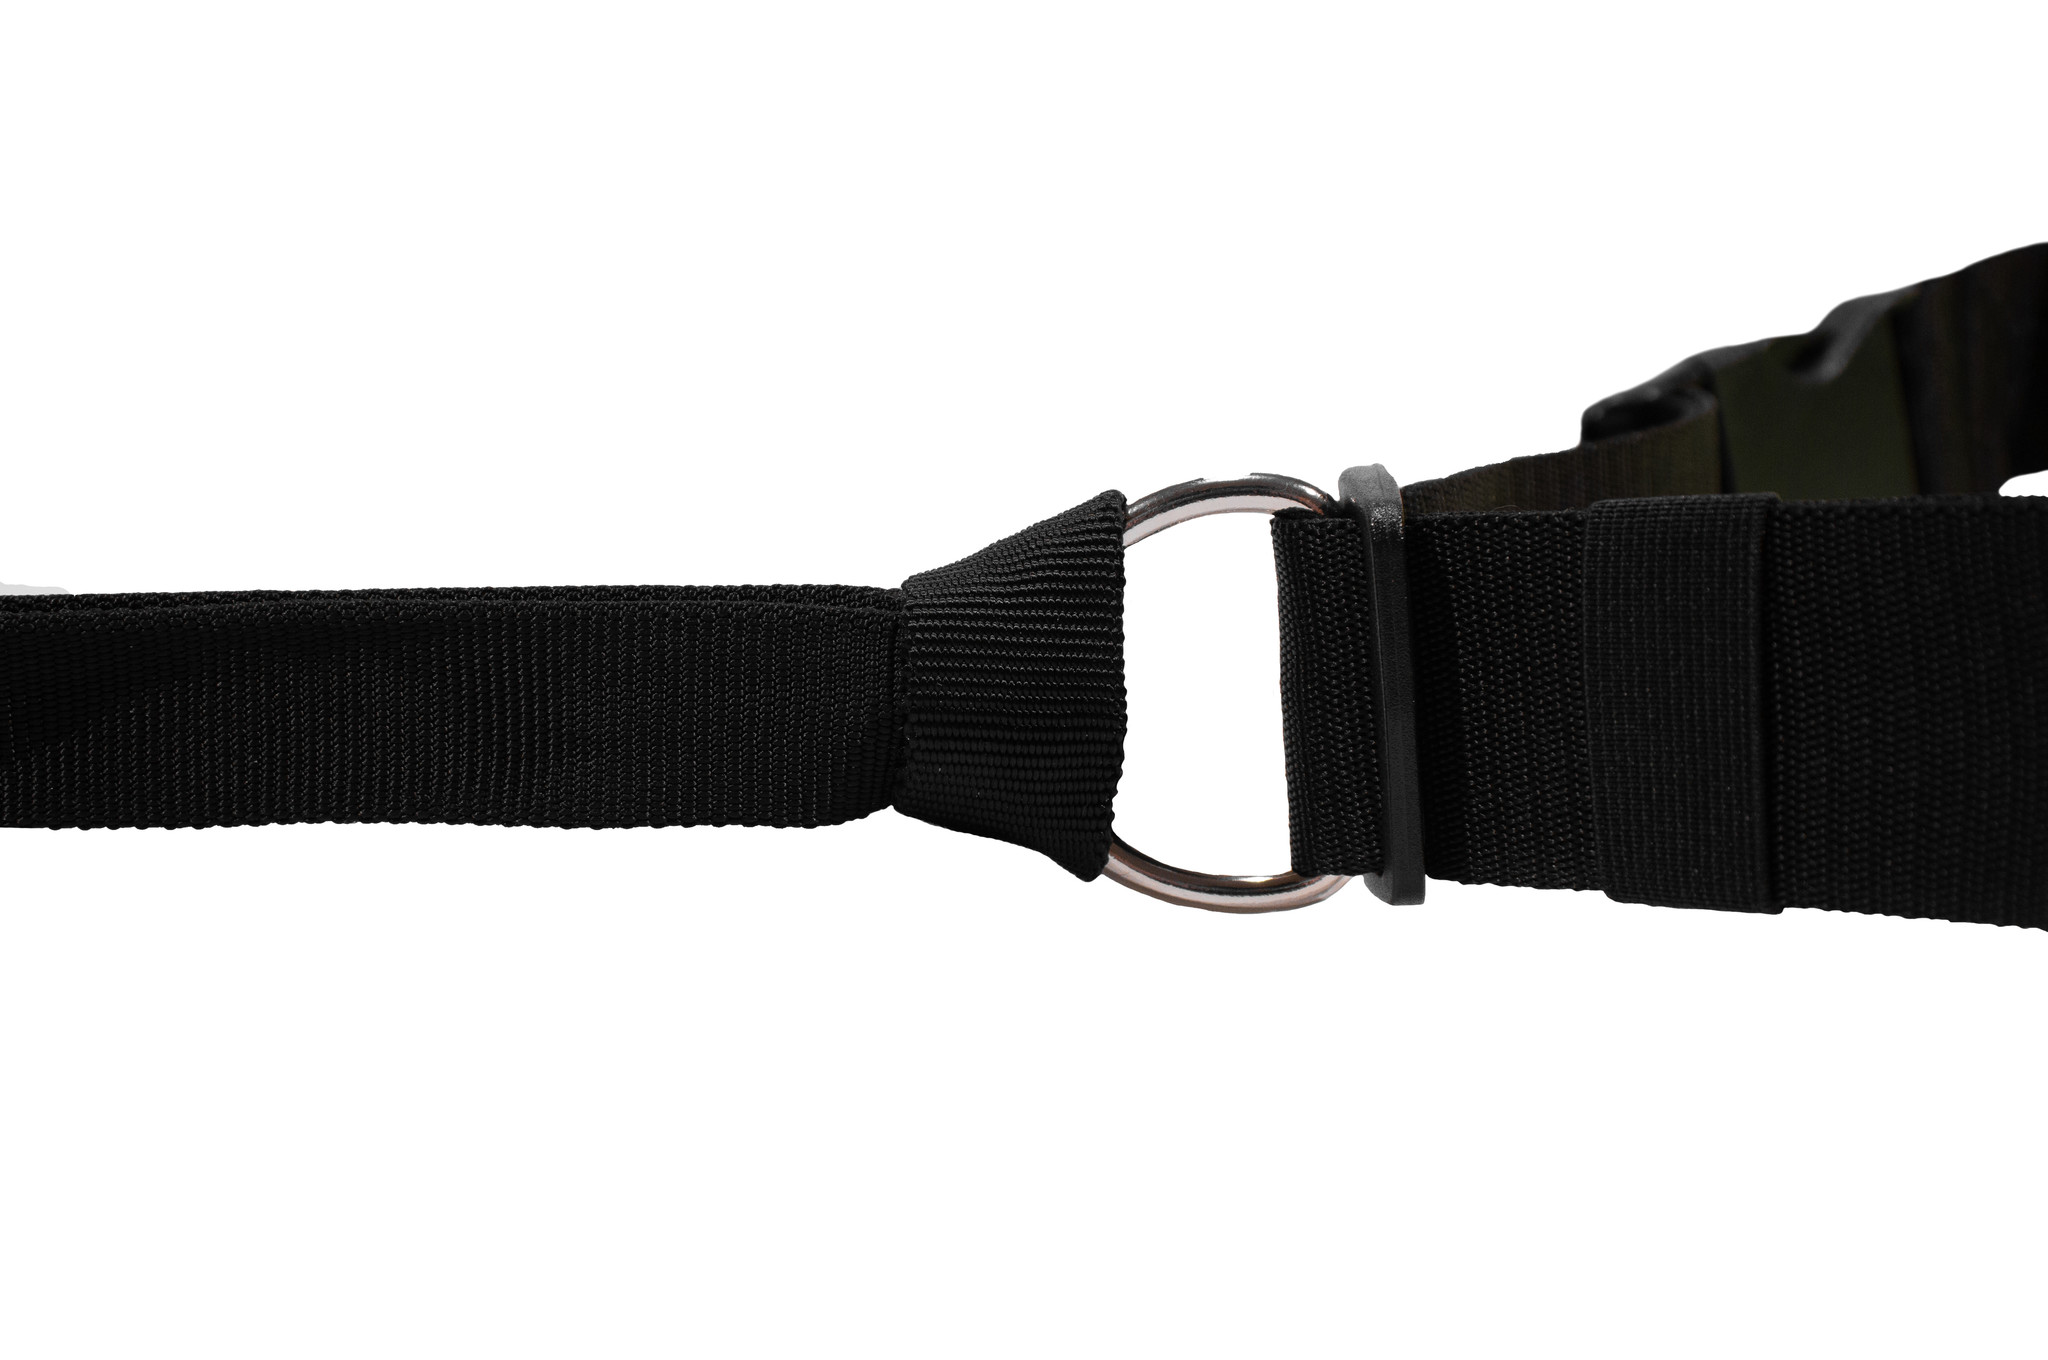 LasaLine Hands free Dog Leash with integrated Bungee - black